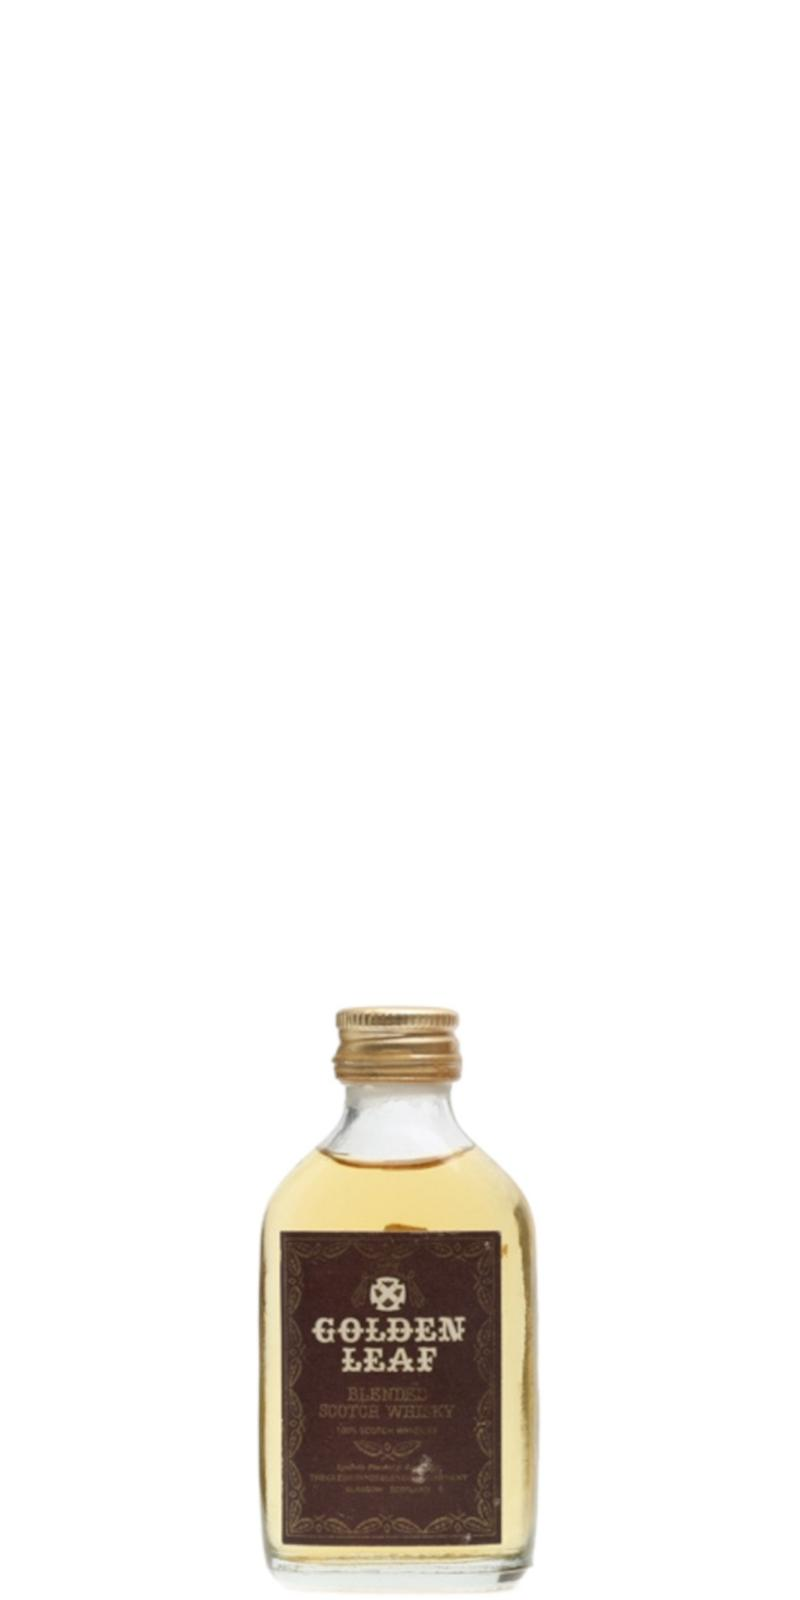 Golden Leaf Blended Scotch Whisky